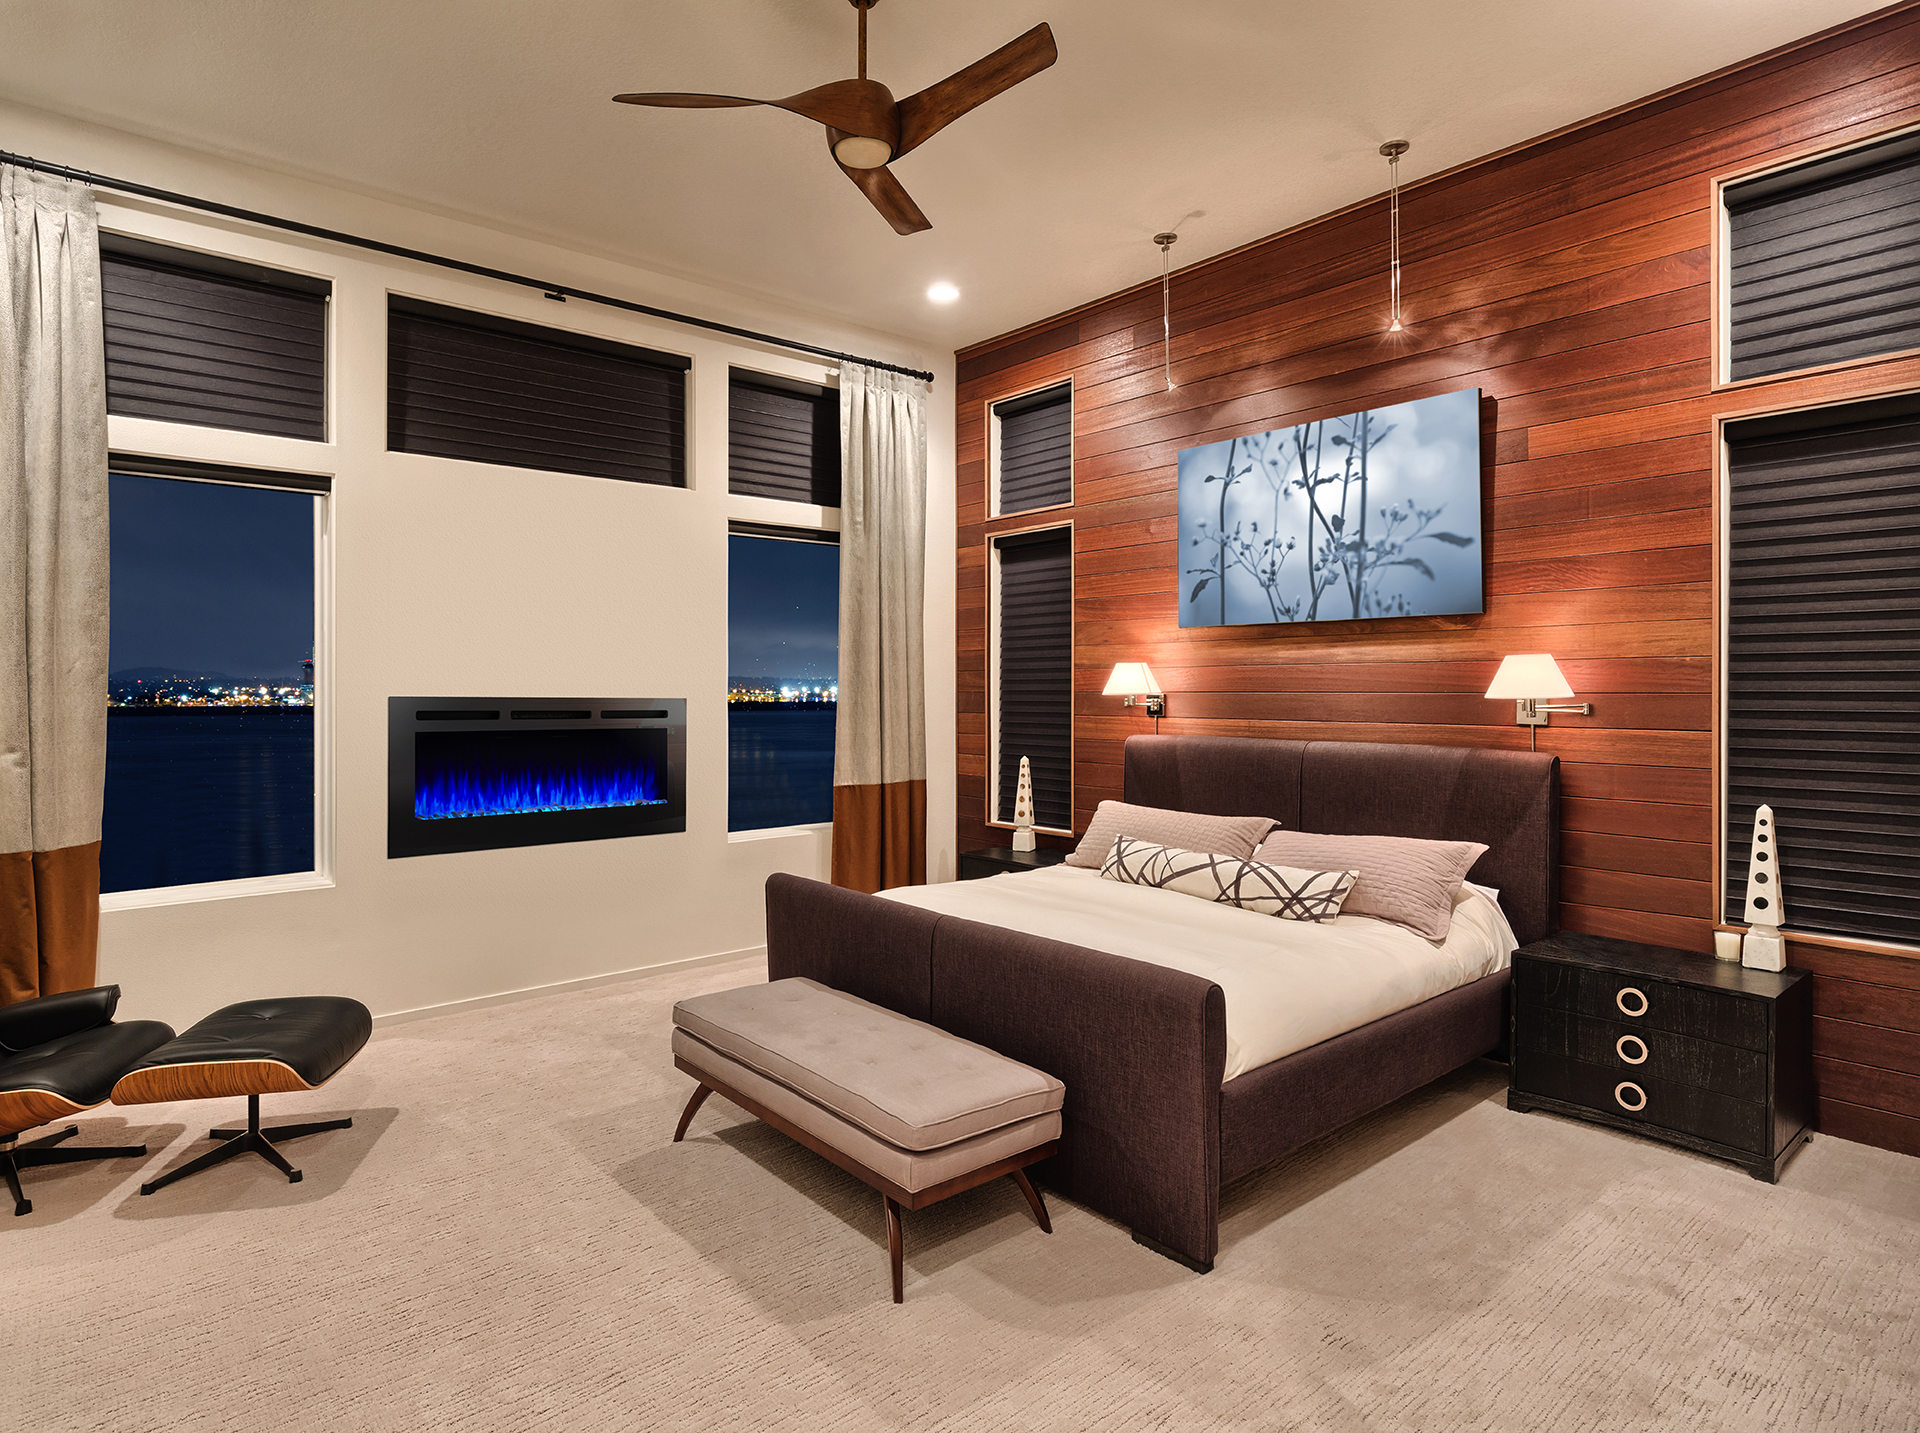 Allusion 60 - Photo (Blue flame - White stones - Bedroom - 4C Low res).jpg